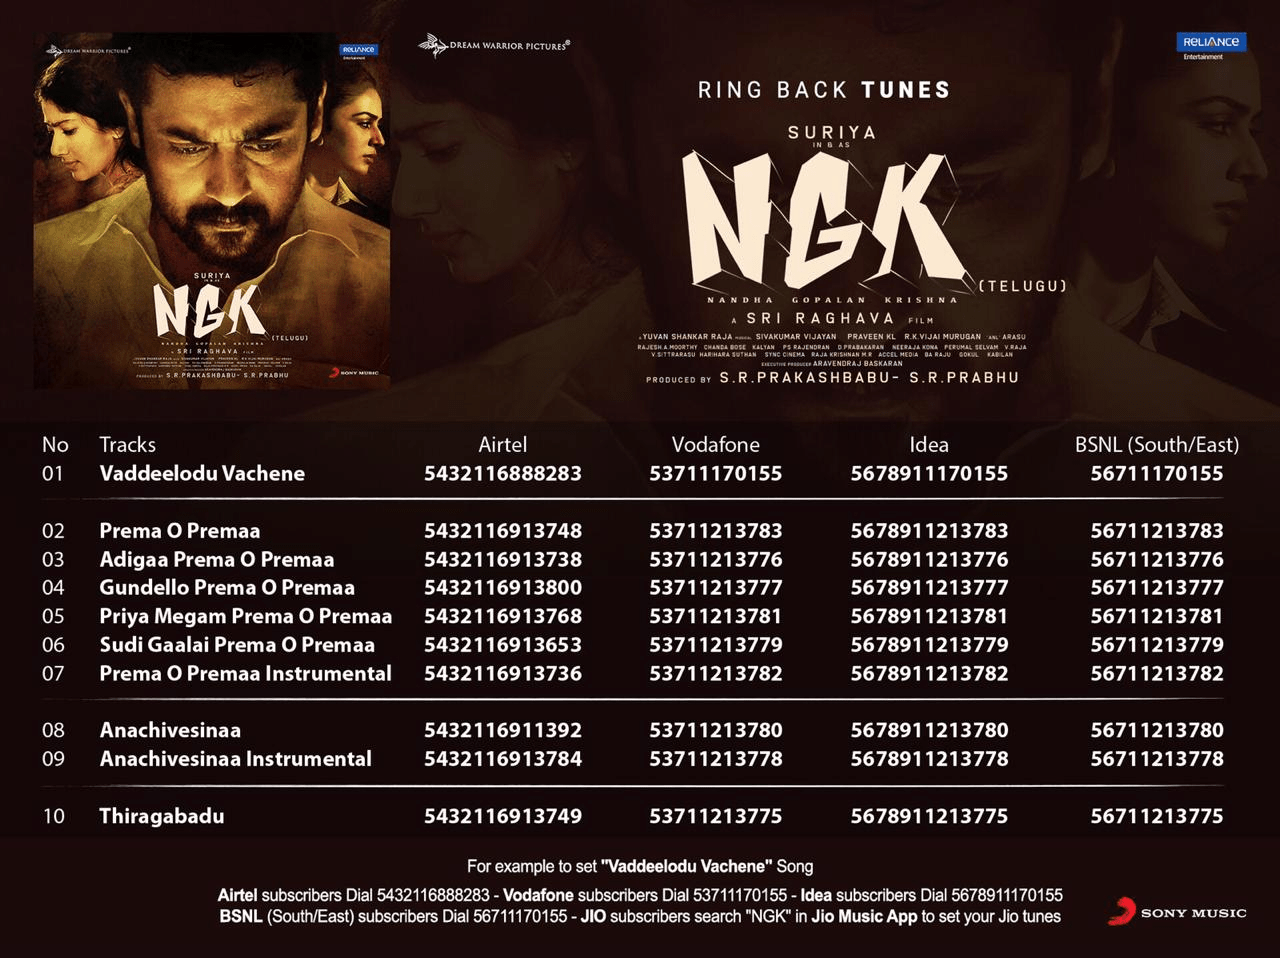 NGK Ringback Tunes In Tamil And Telugu Posters - Social News XYZ